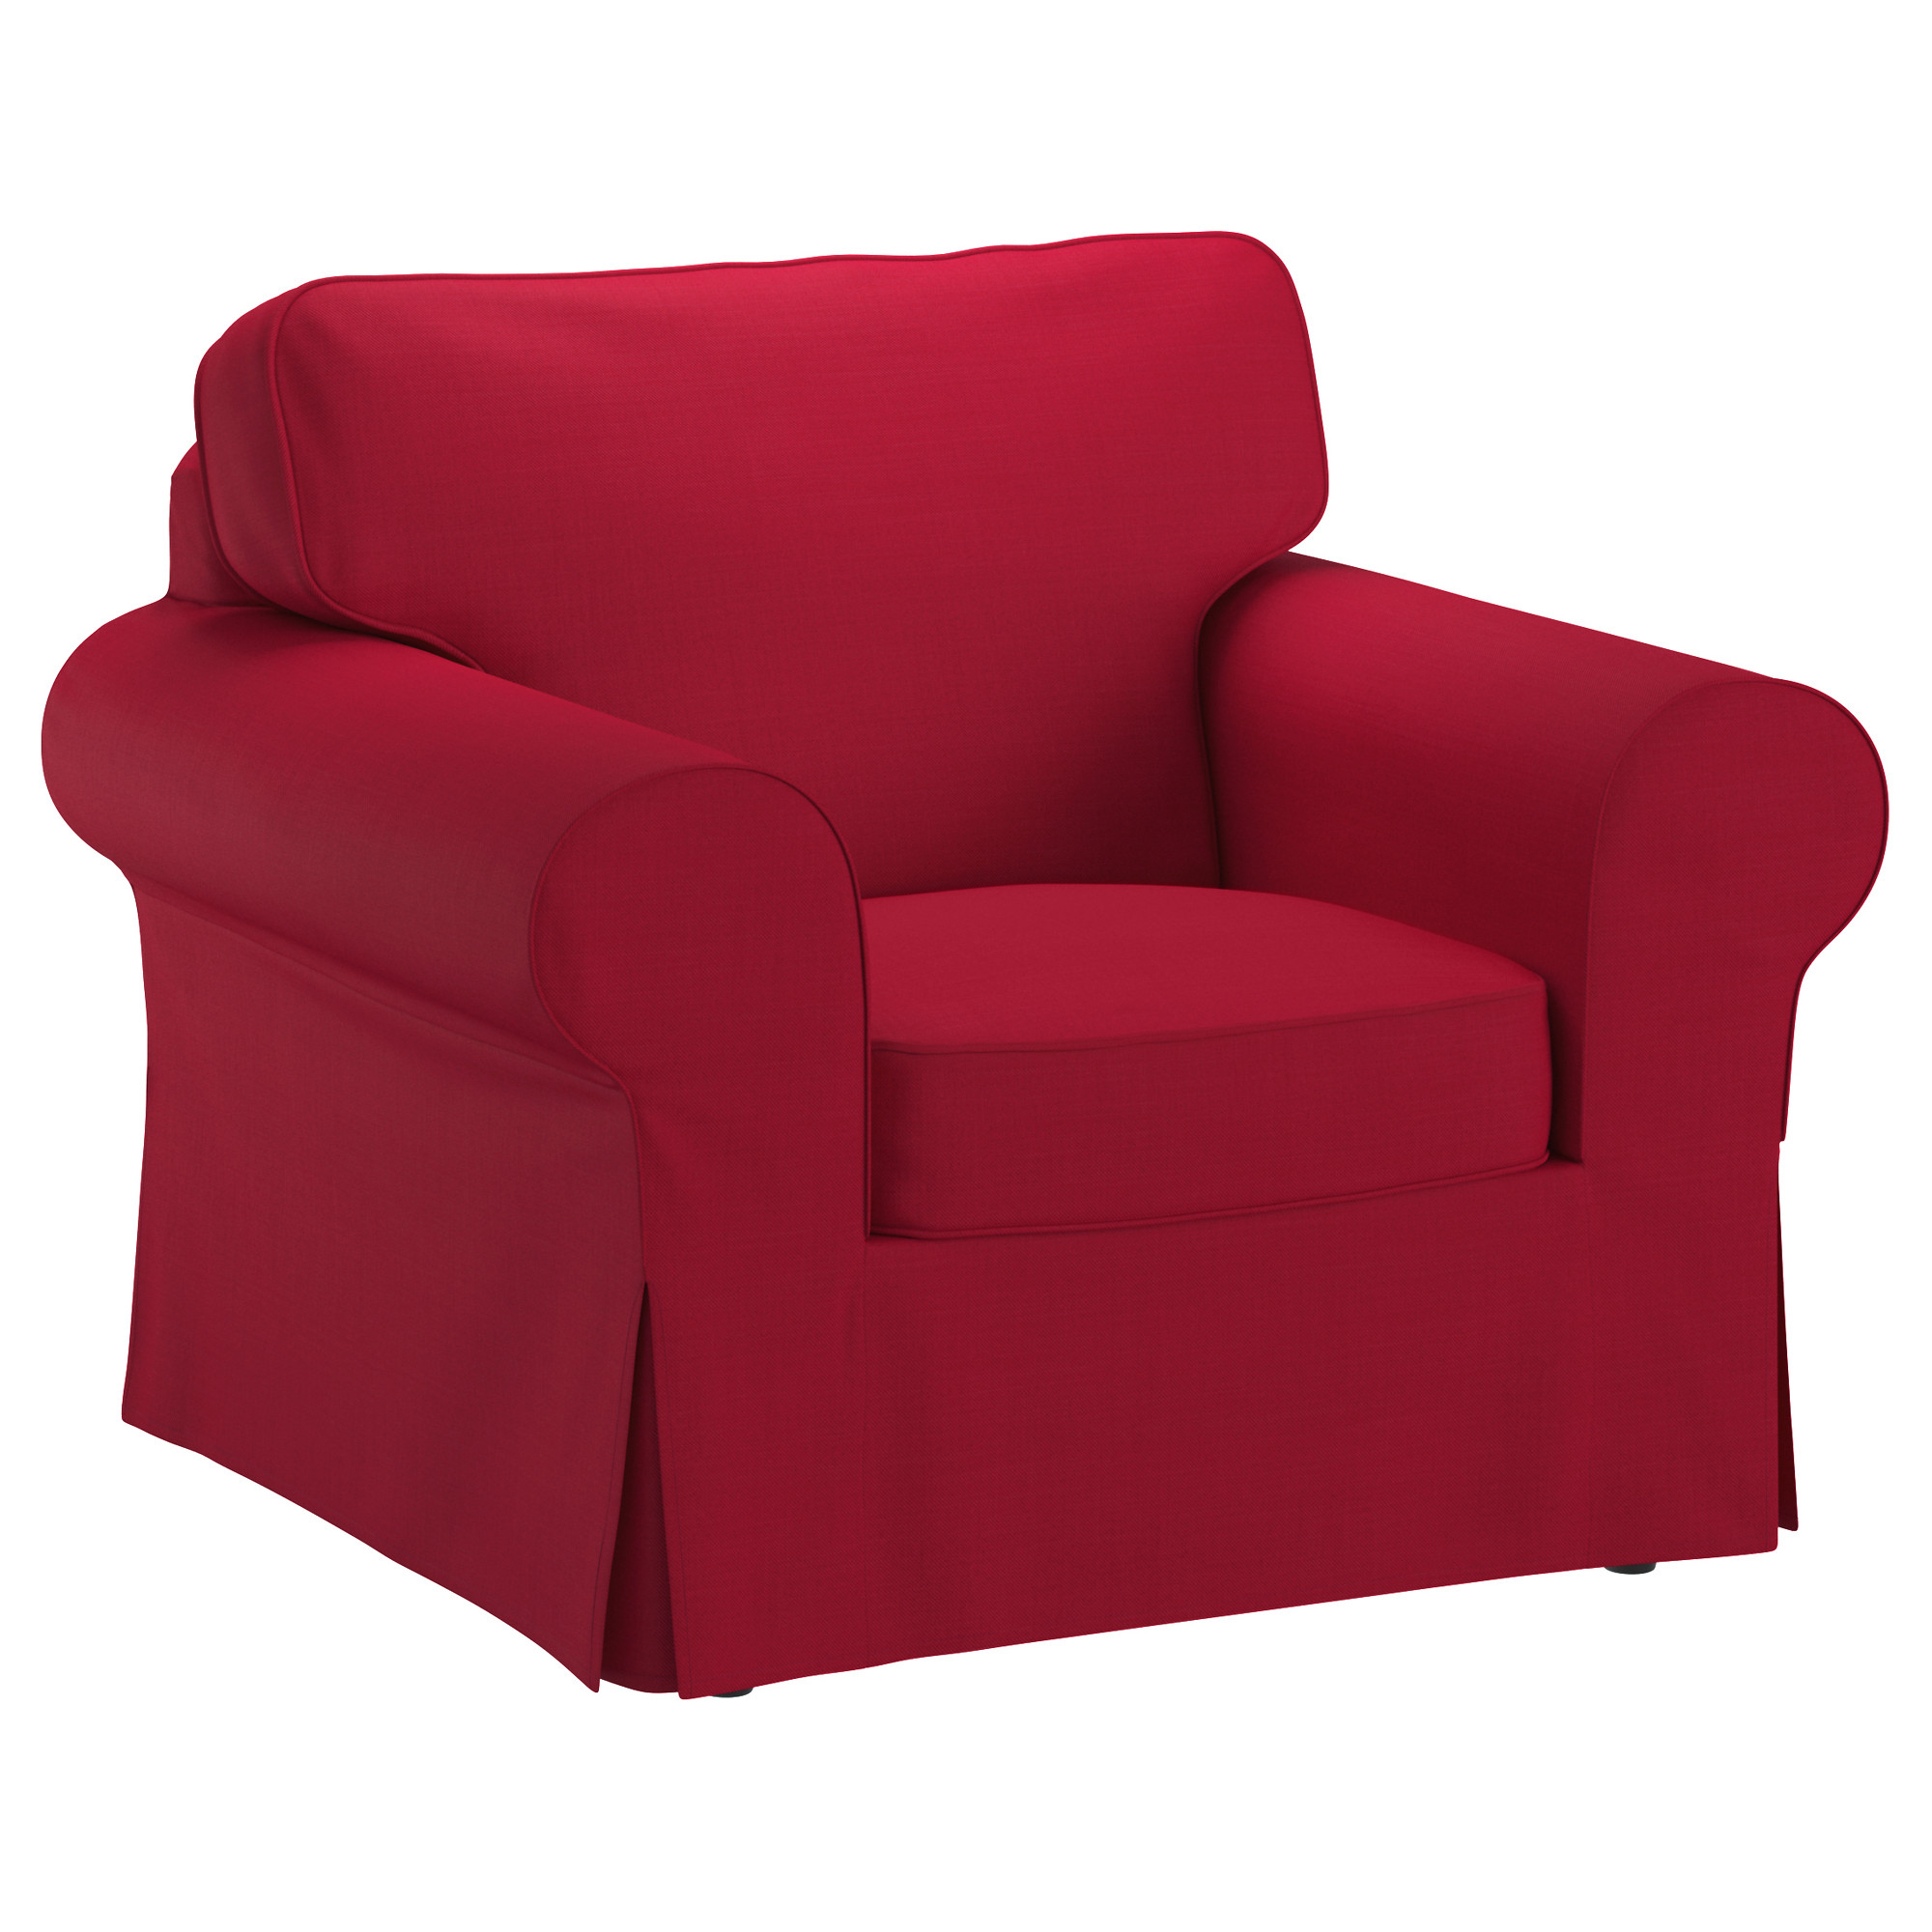 Well Known Red Sofas And Chairs Within Ikea Ektorp Armchair The Cover Is Easy To Keep Clean As It Is (Gallery 5 of 20)